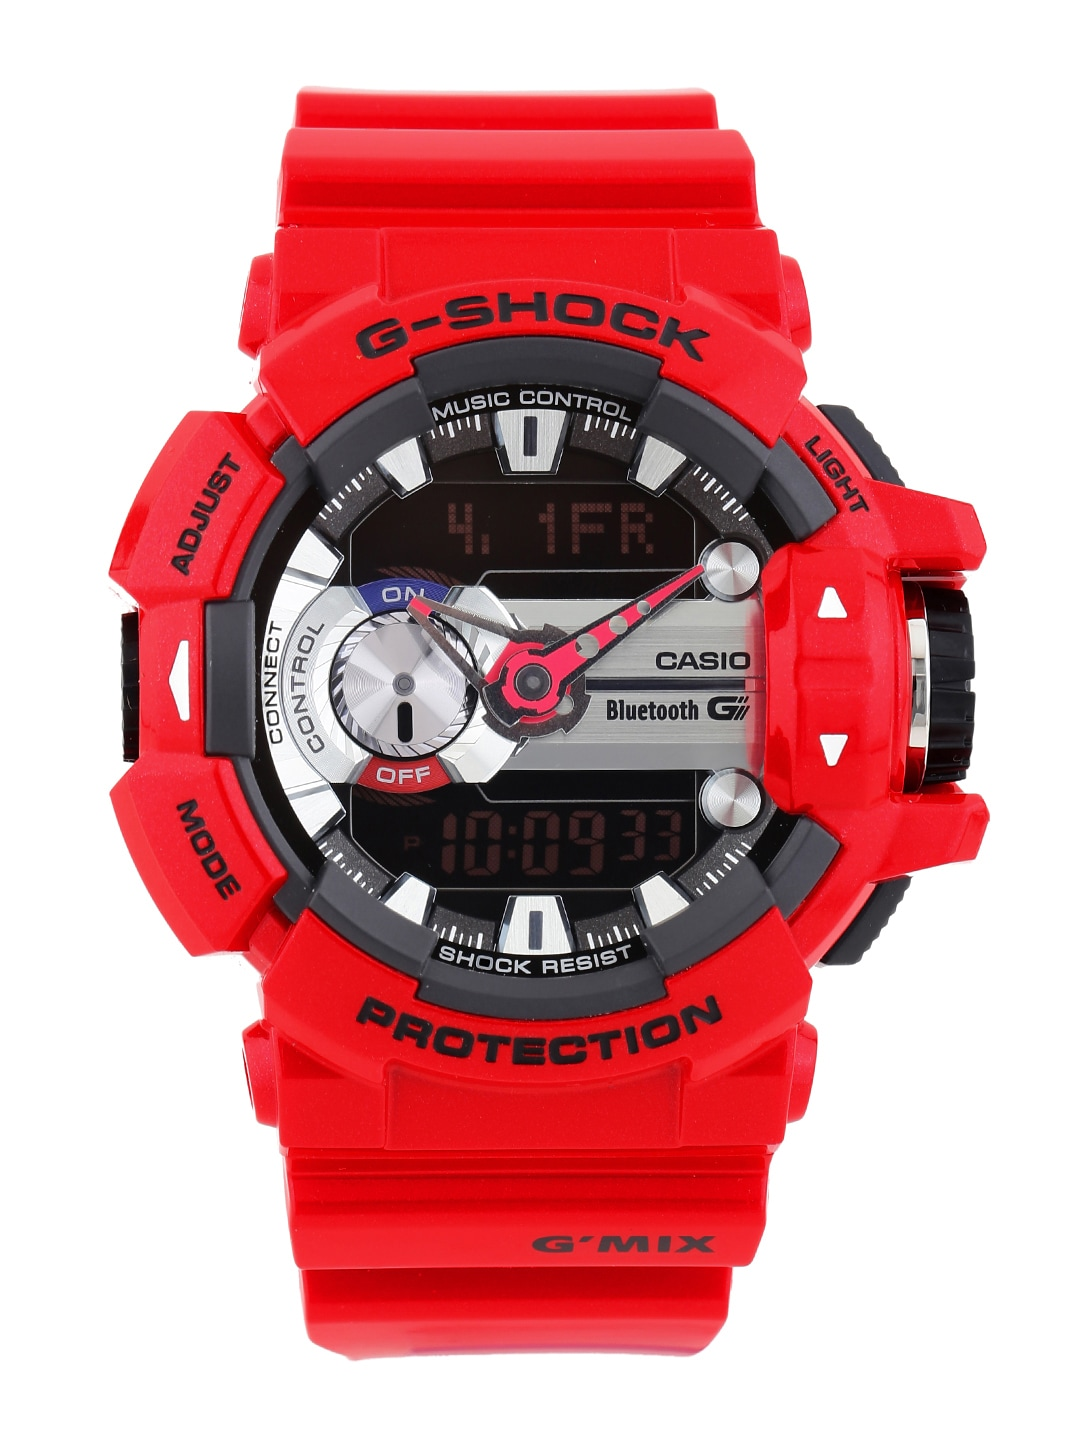 0d72a2212a8d Casio - Buy Casio Watches For Men   Women Online In India